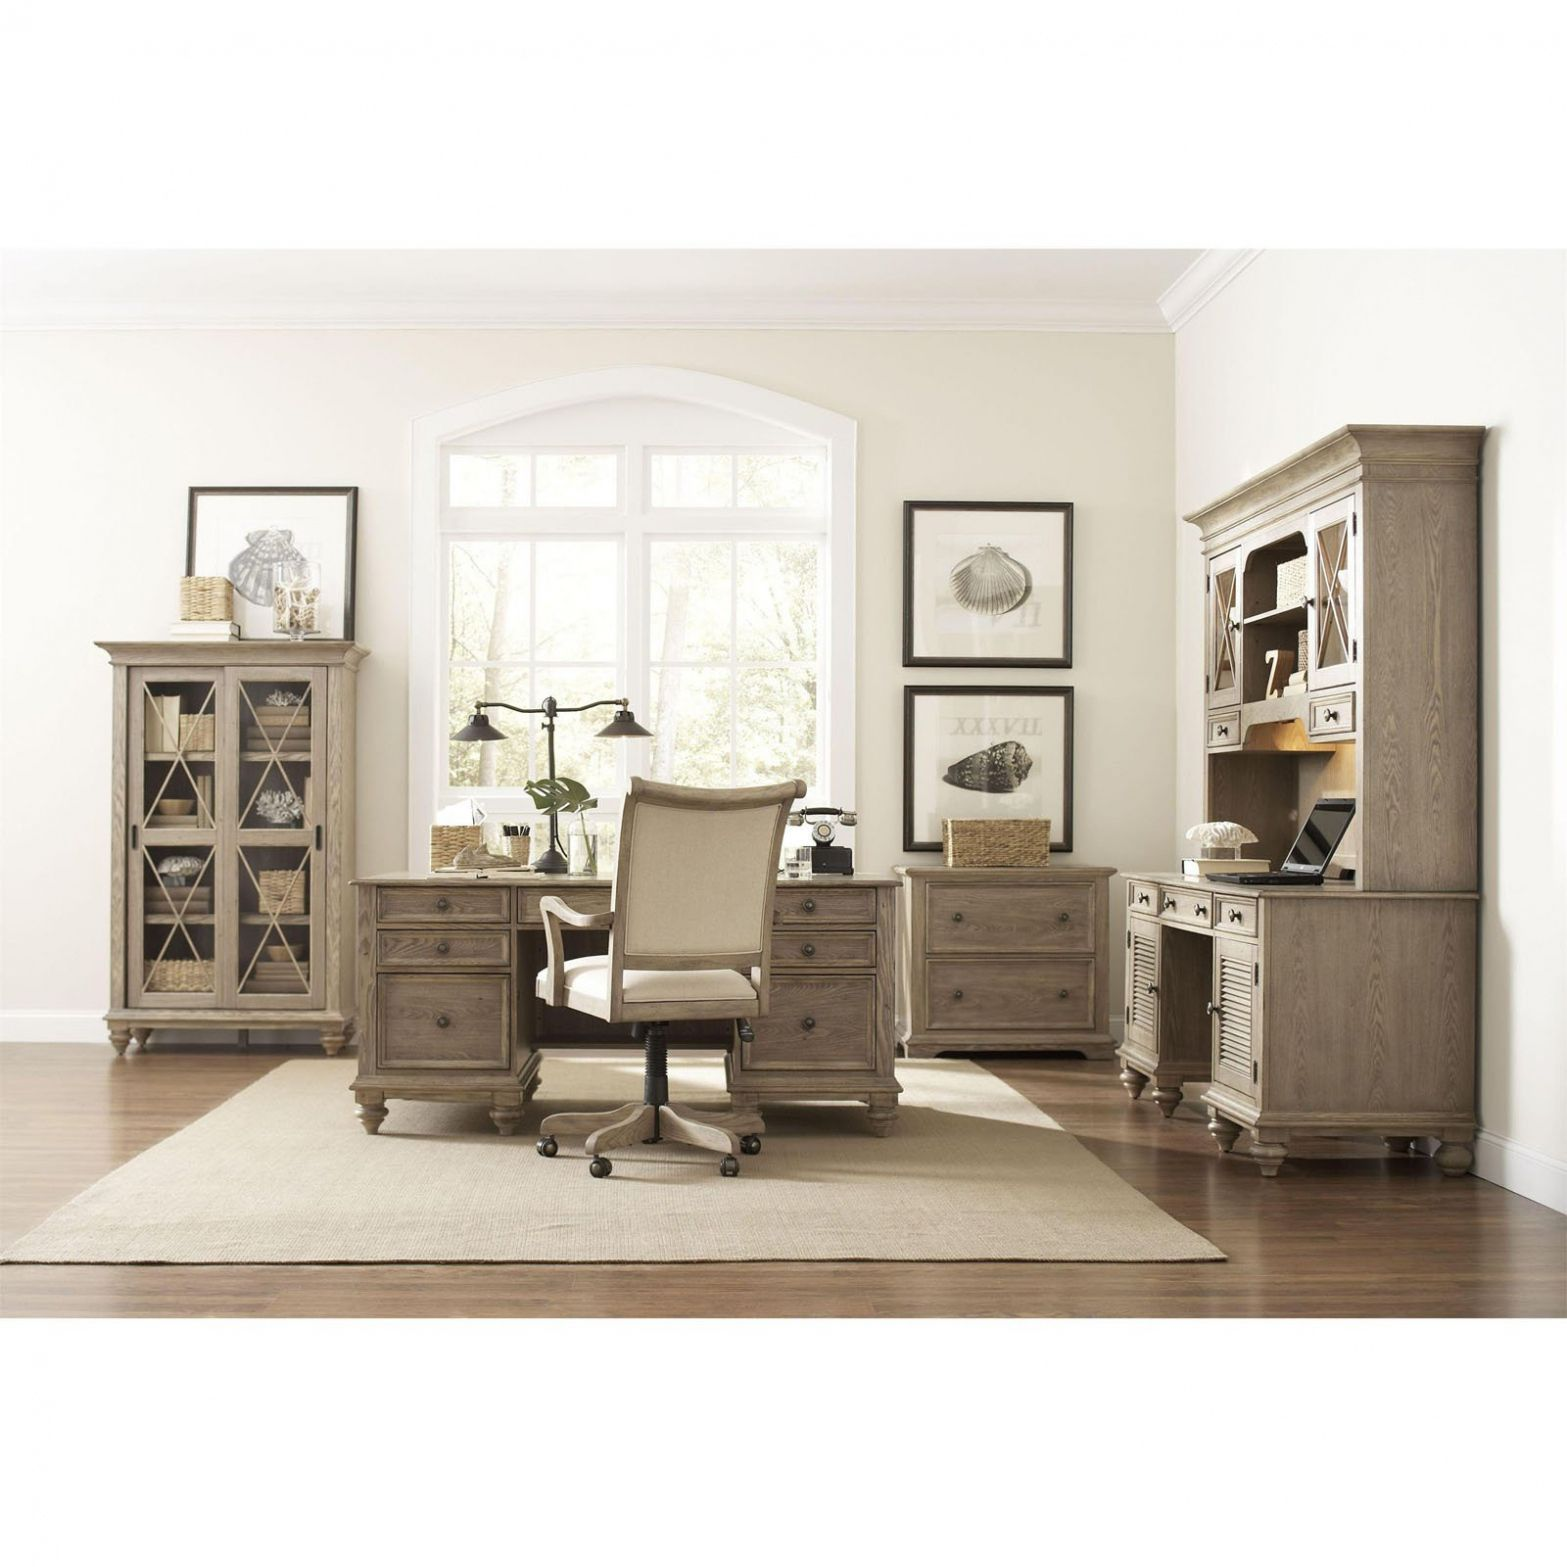 Charming 77+ Riverside Furniture Coventry Executive Desk   Office Furniture For Home  Check More At Http